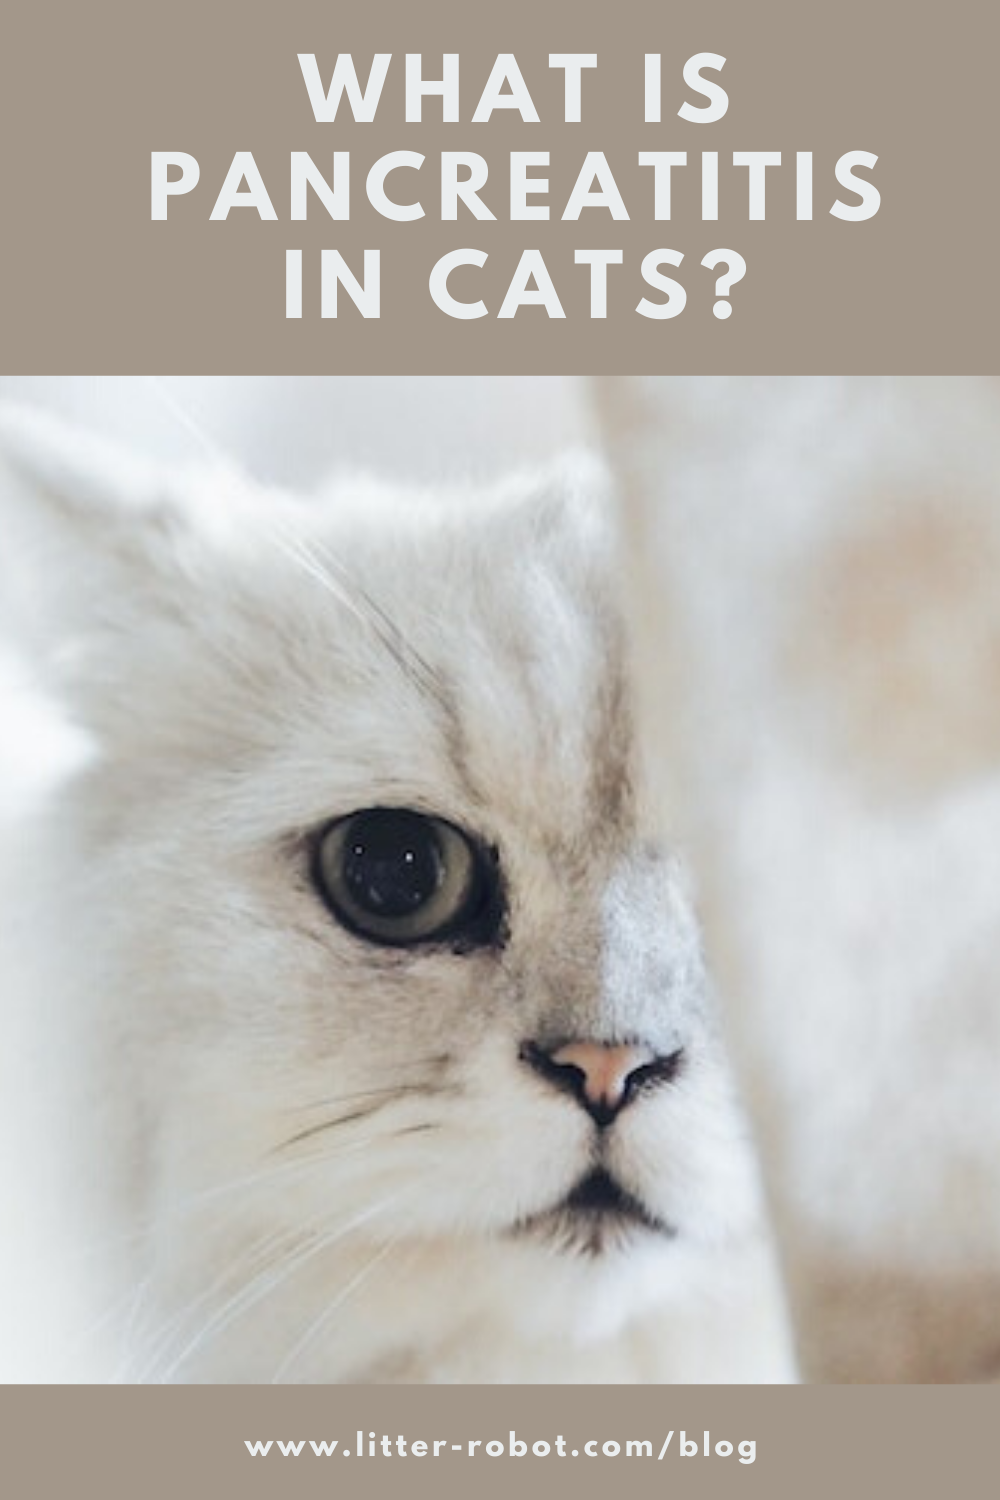 What Is Pancreatitis In Cats Learn More On Litter Robot Blog In 2020 Cats Medical Prescription Litter Robot